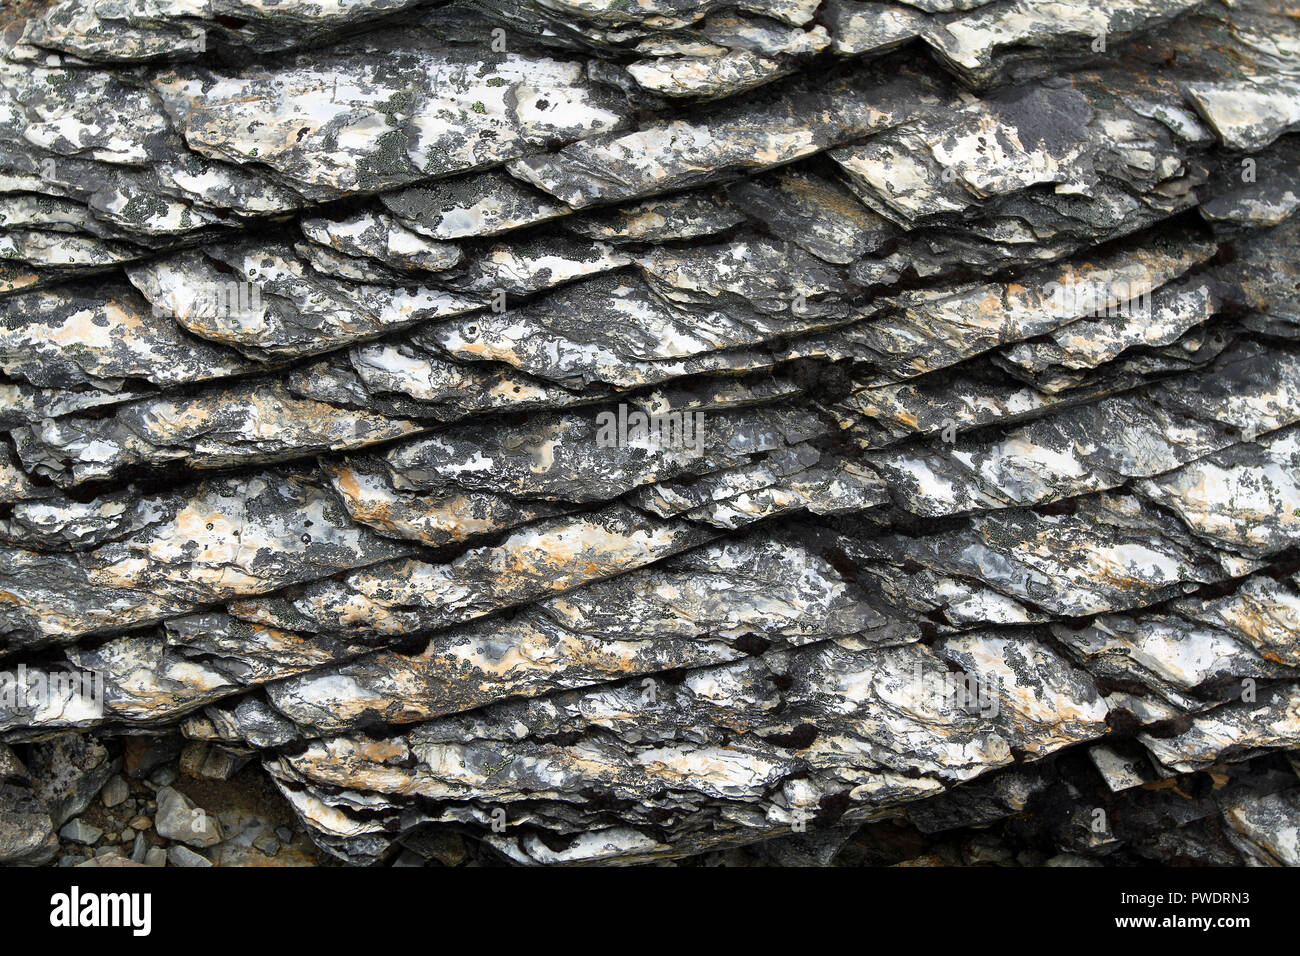 shinning surface and texture of fine grained metamorphic rock - Stock Image